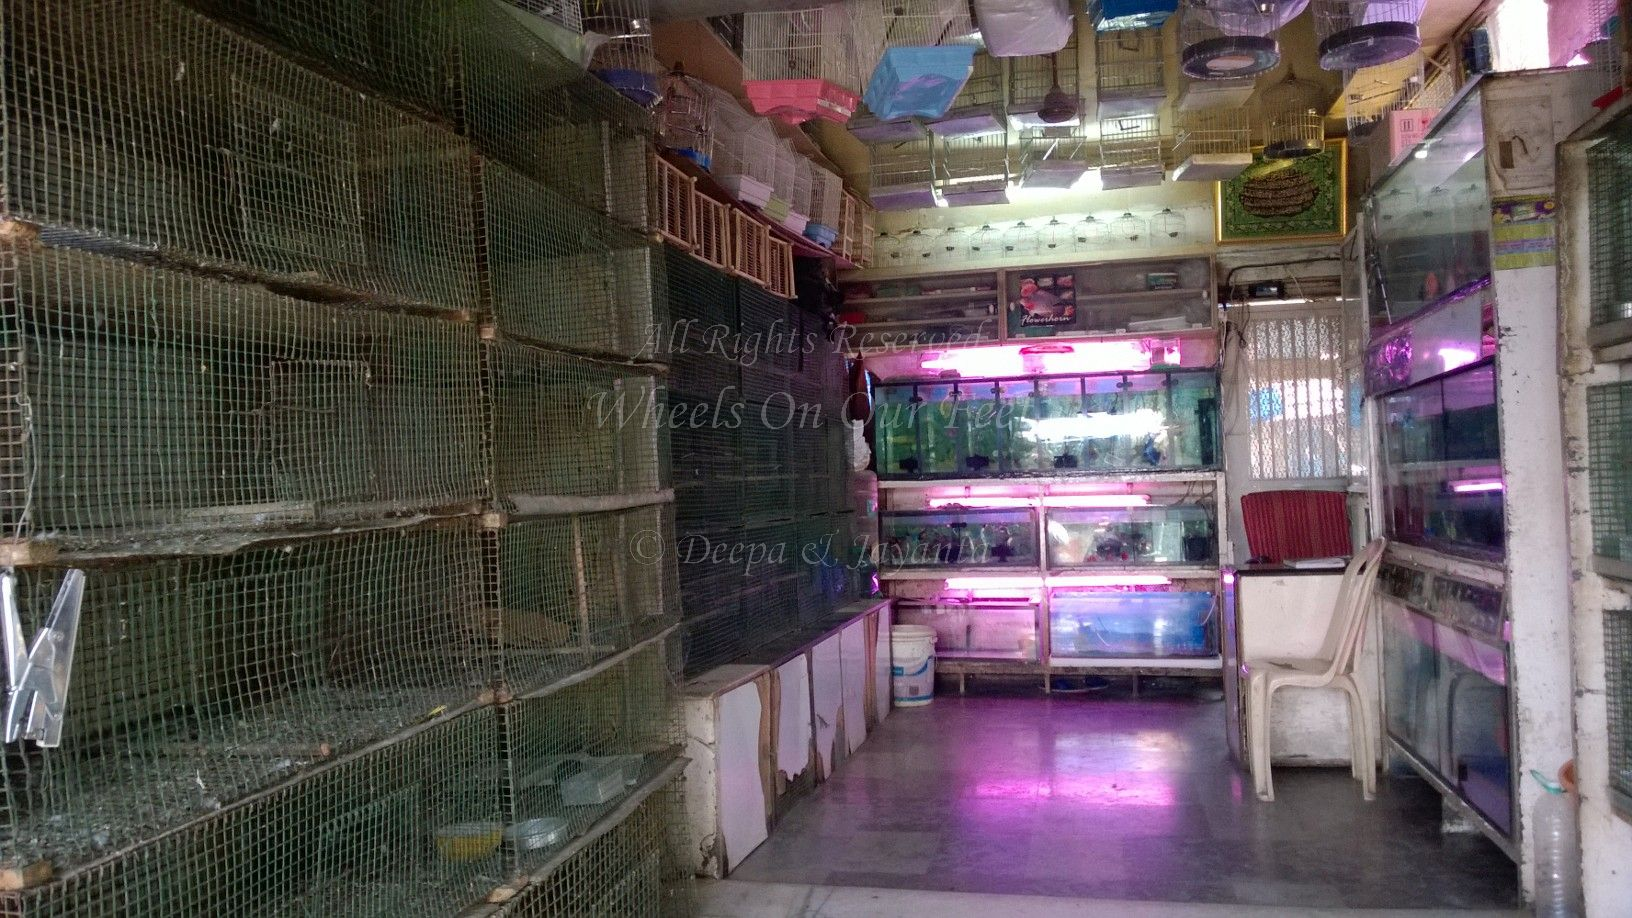 Pet Shops in Mumbai's Crawford Market (4) – Wheels On Our Feet